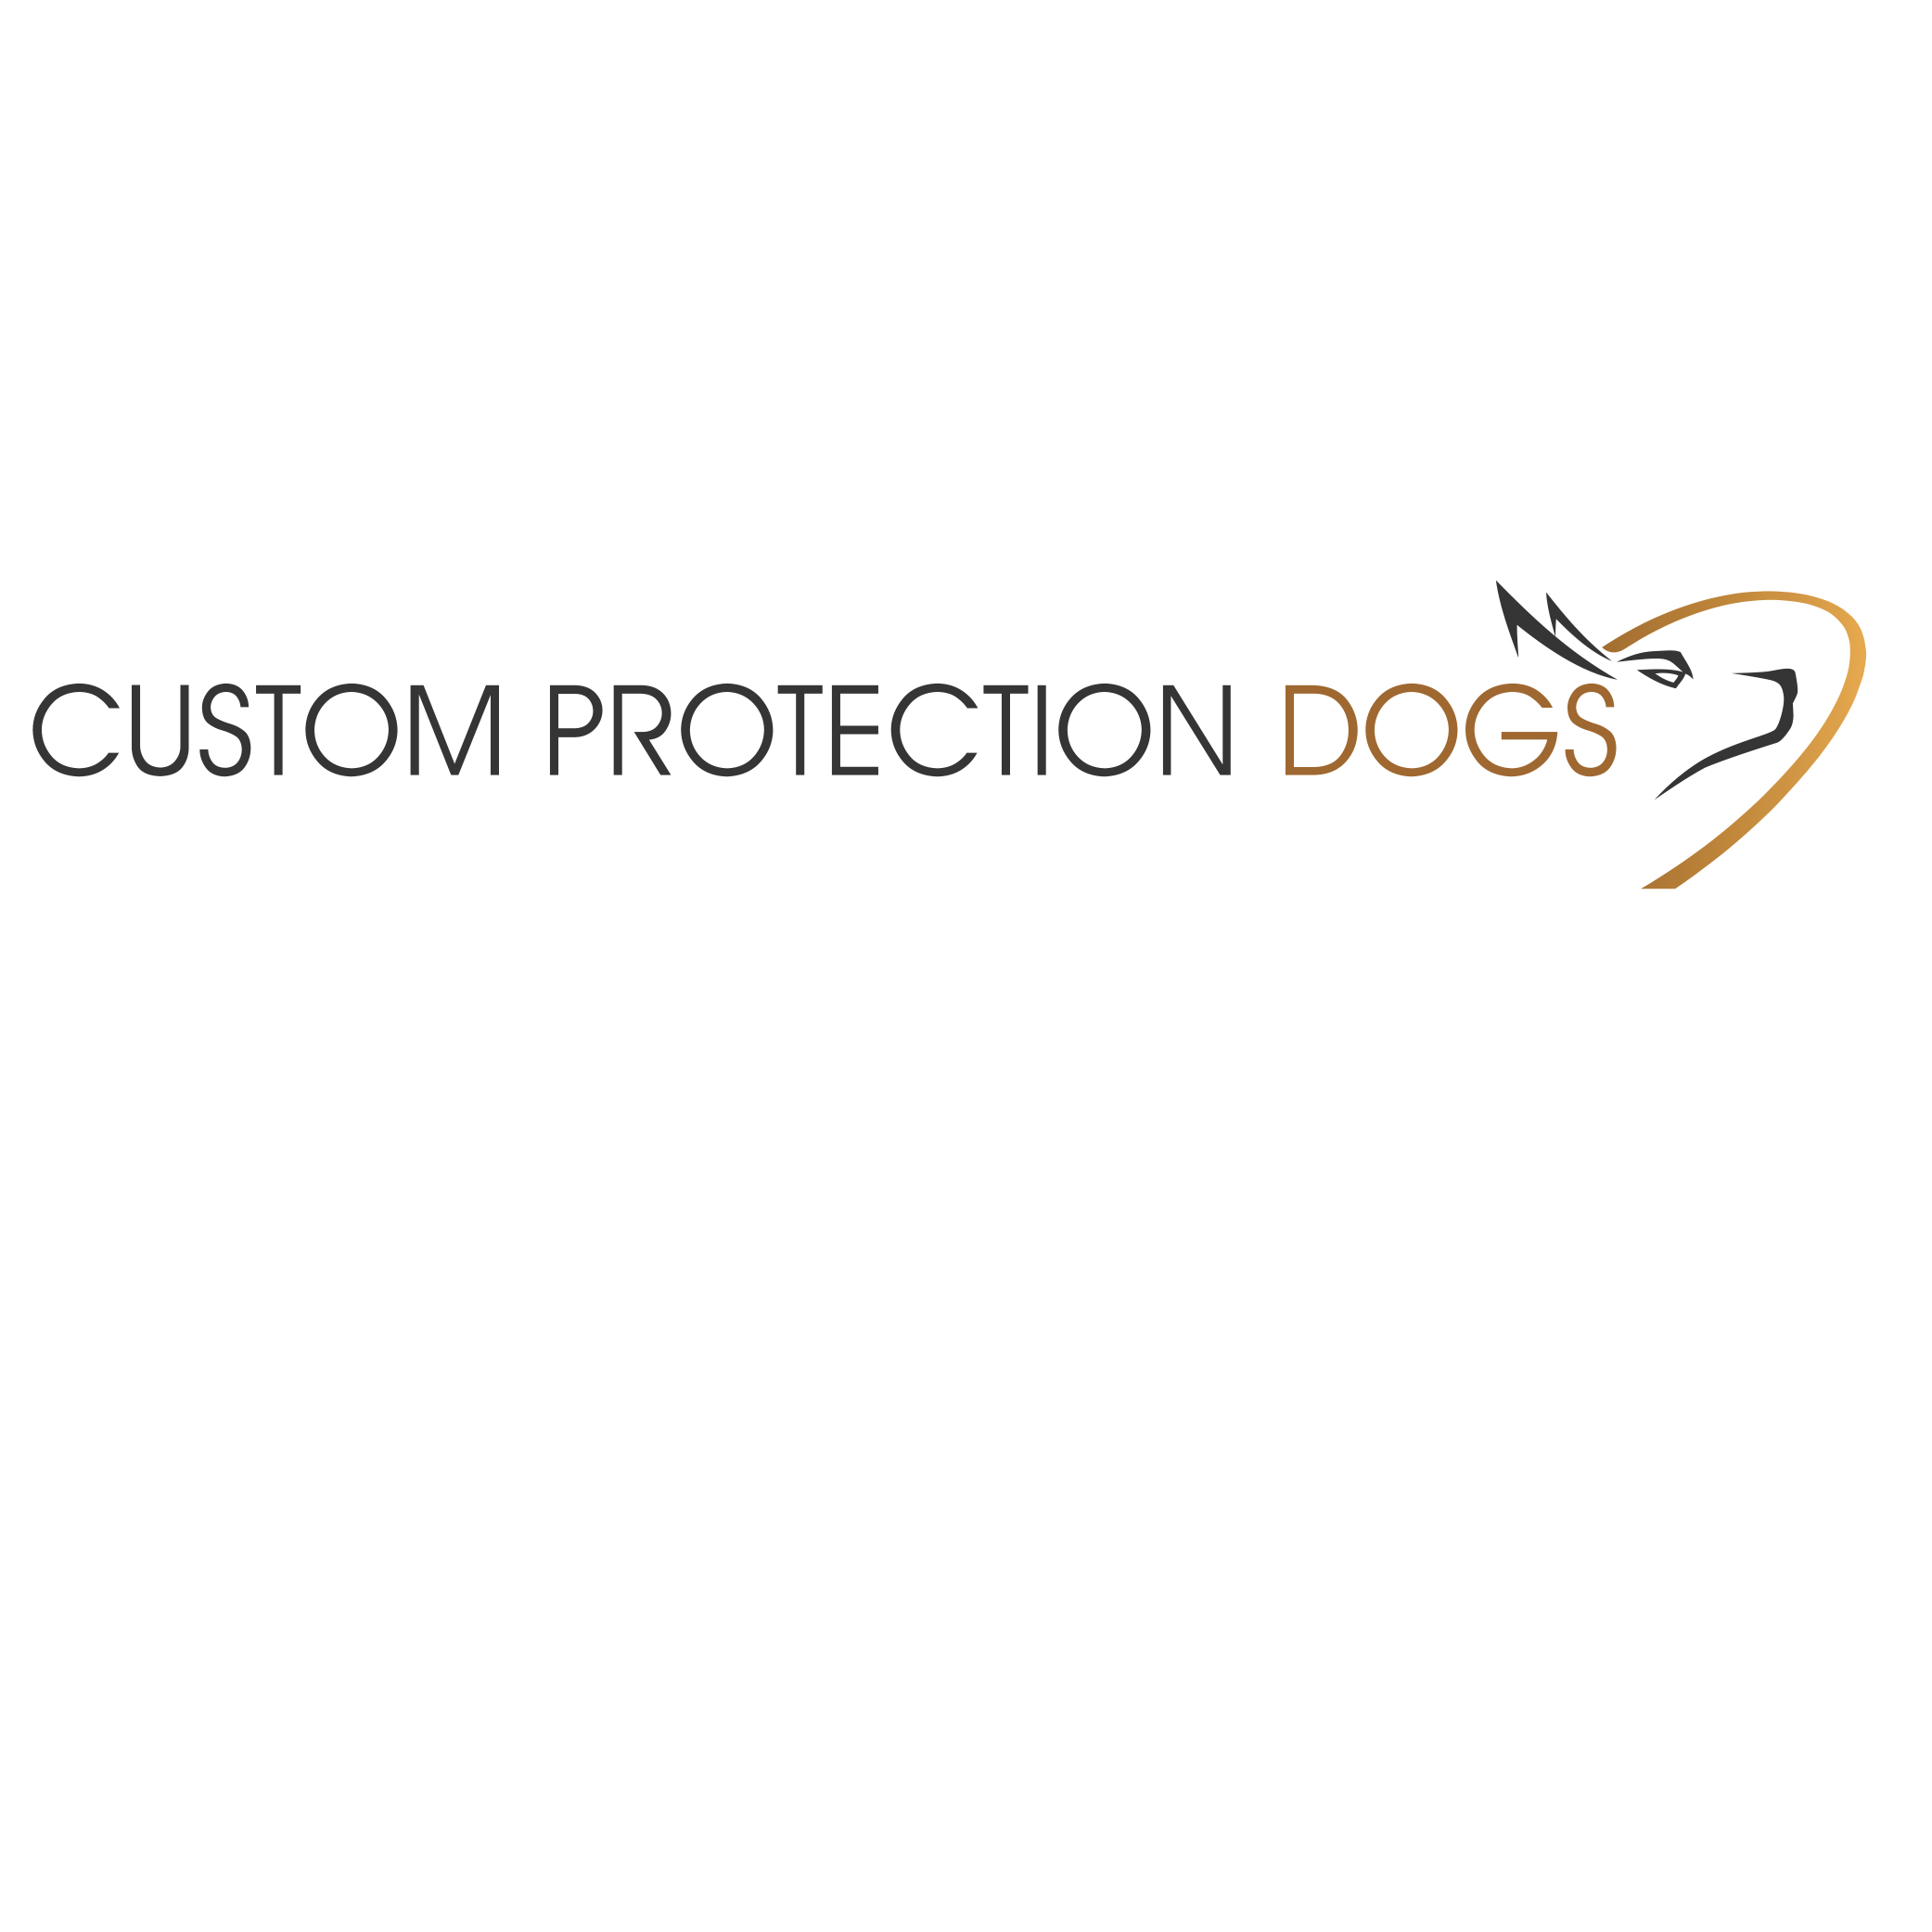 Dog Trainer in WA Vancouver 98664 Custom Protection Dogs 10312 NE 4th st  (360)797-5794